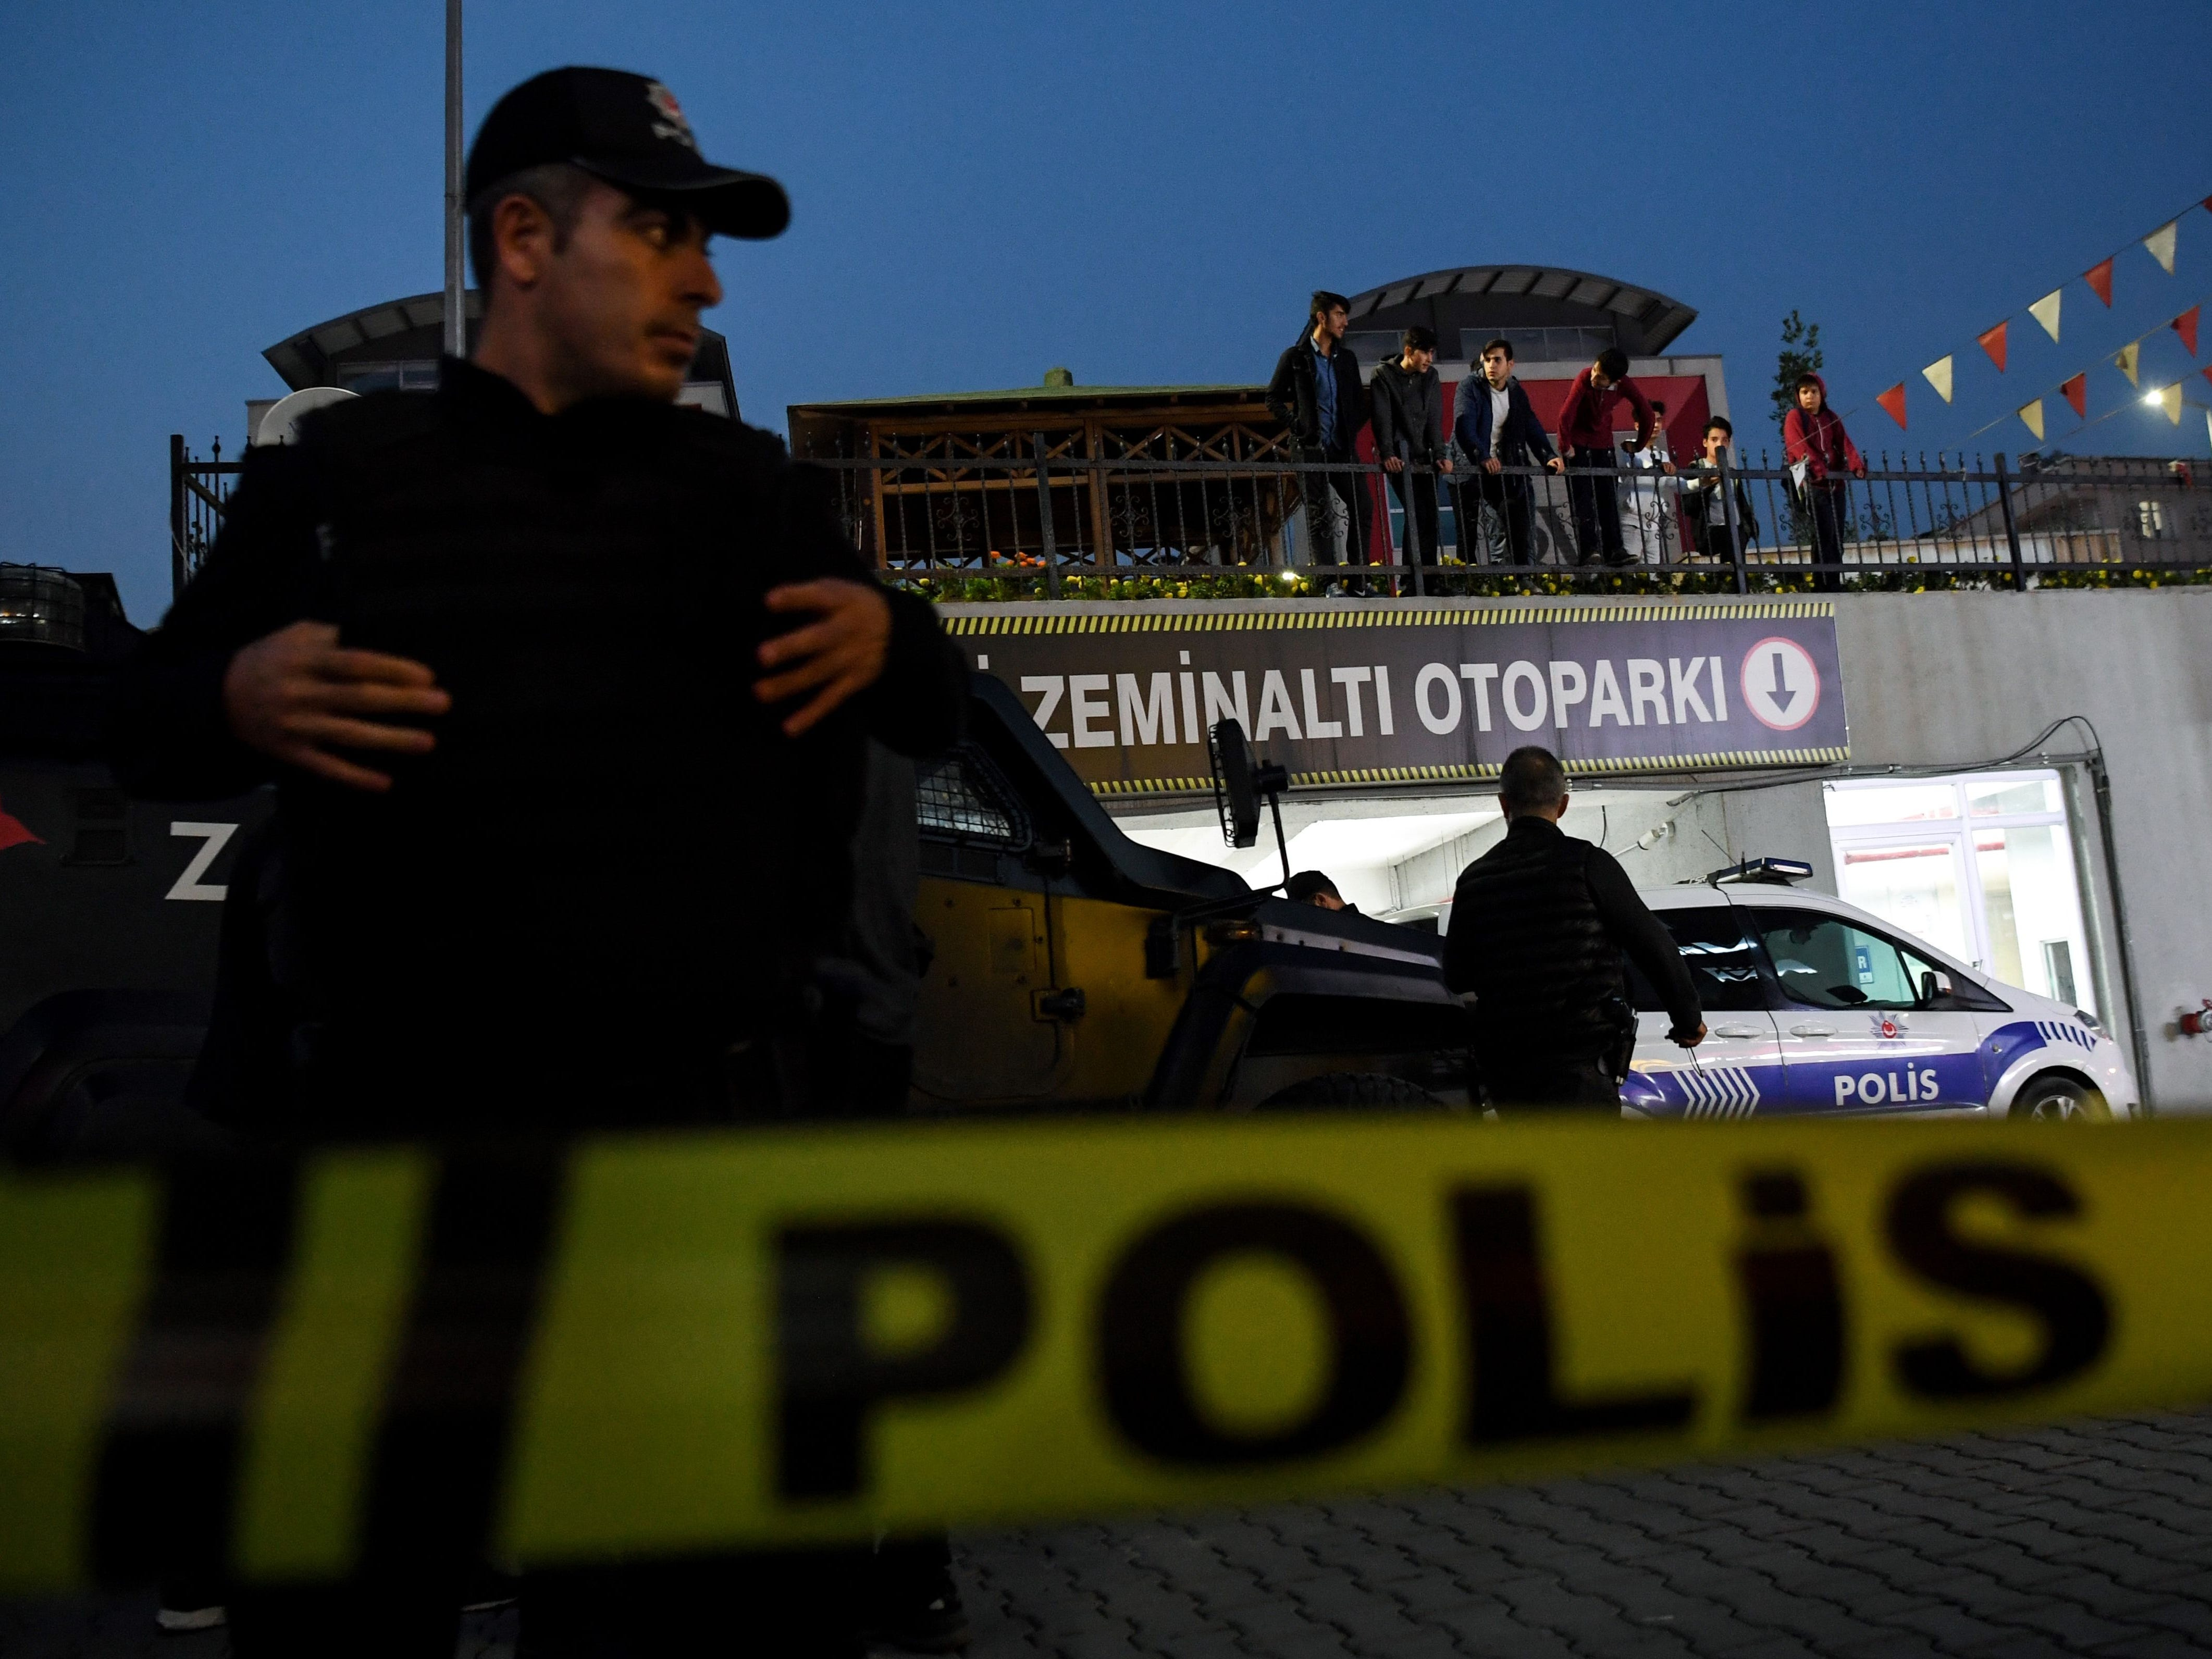 Turkish police stand guard as they cordoned off an underground car park, Oct. 22, 2018, in Istanbul, after they found an abandoned car belonging to the Saudi consulate, three weeks after the murder of journalist Jamal Khashoggi in the Saudi consulate.